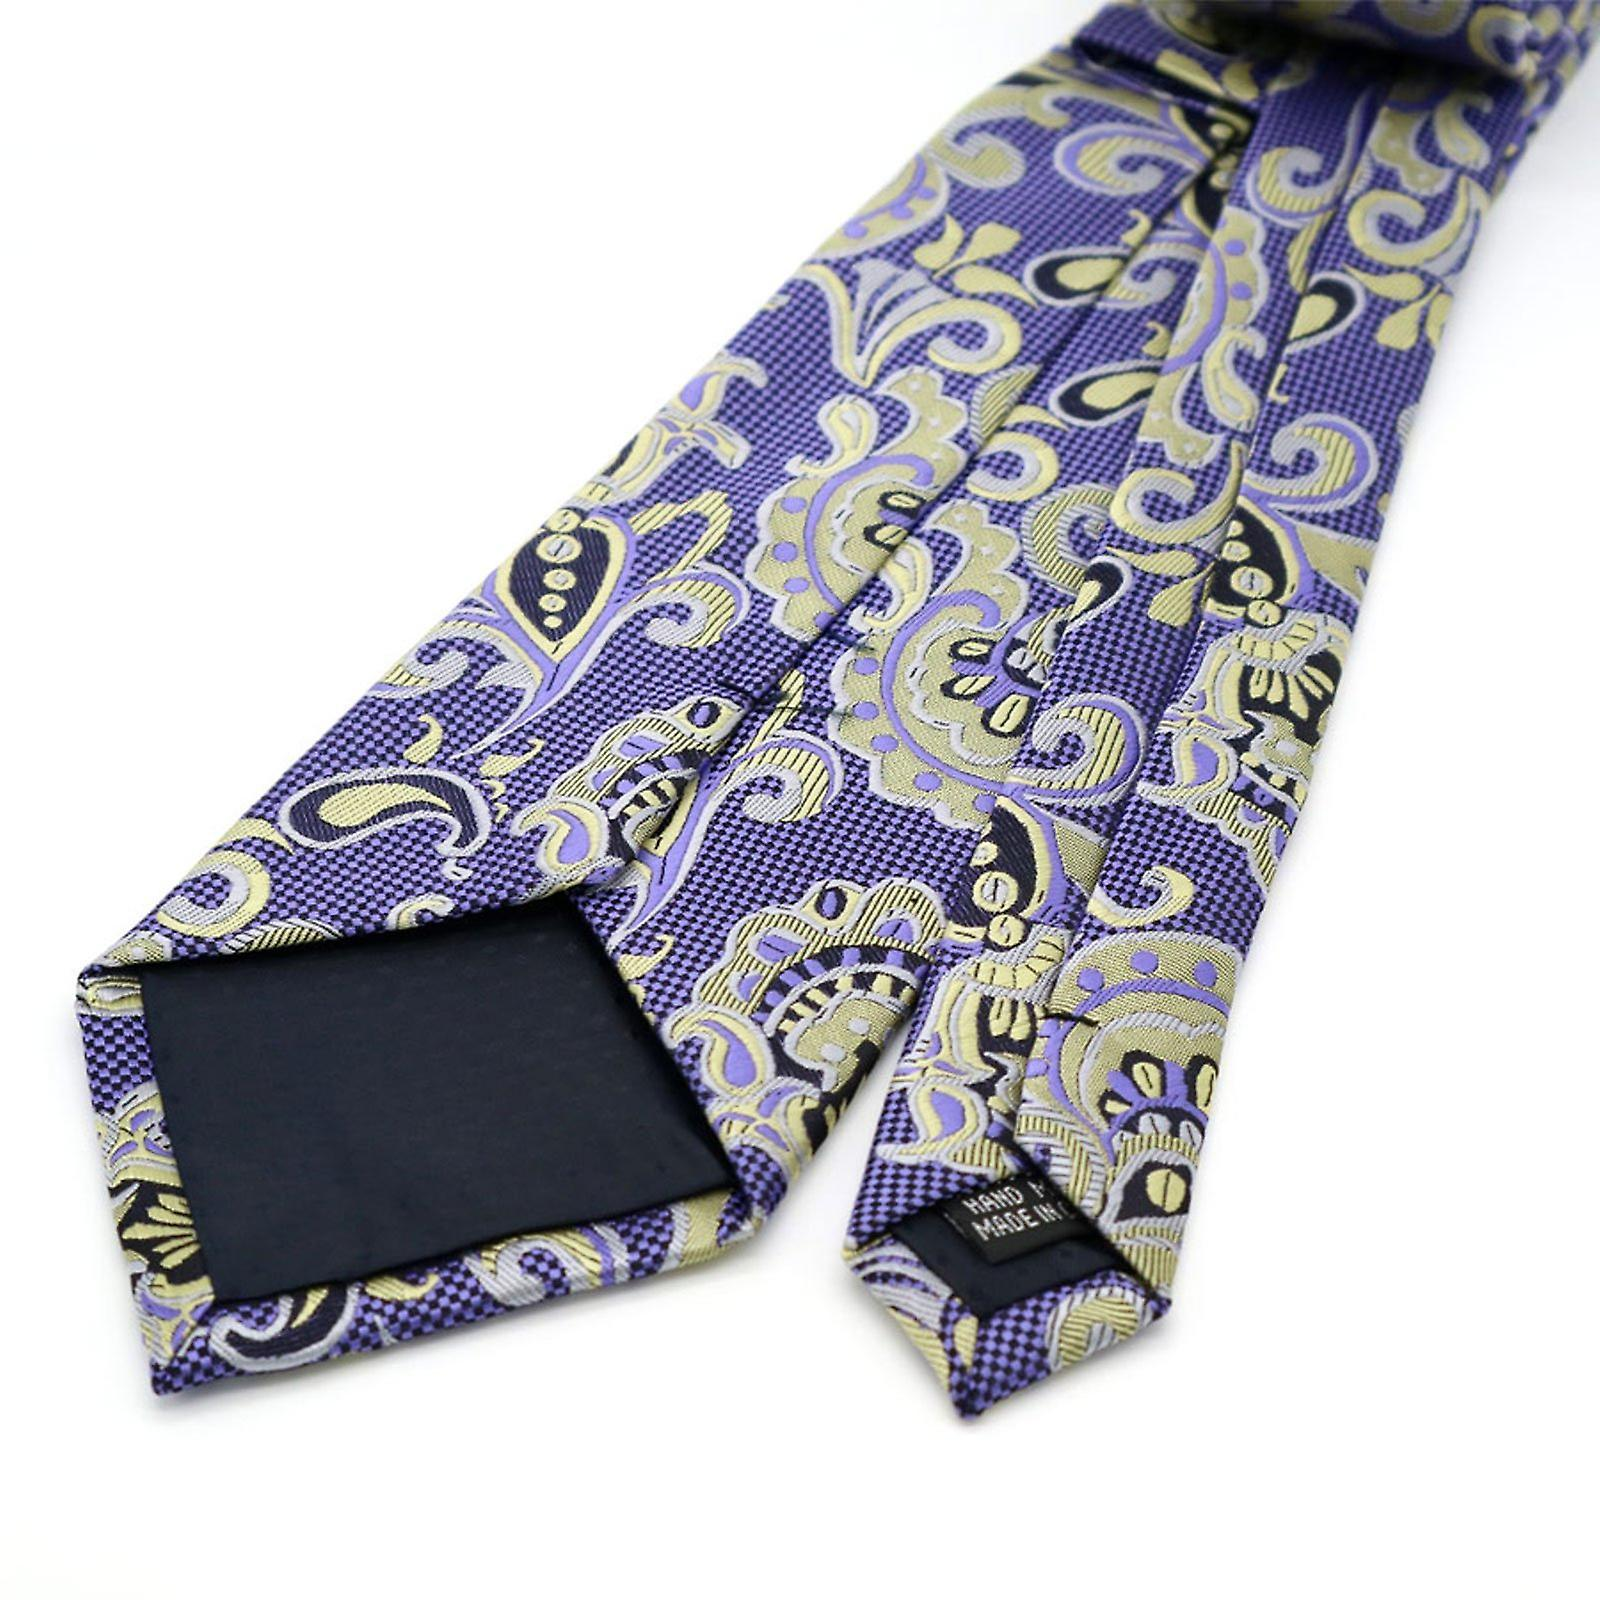 Light purple oat & yellow patterned pocket square & tie